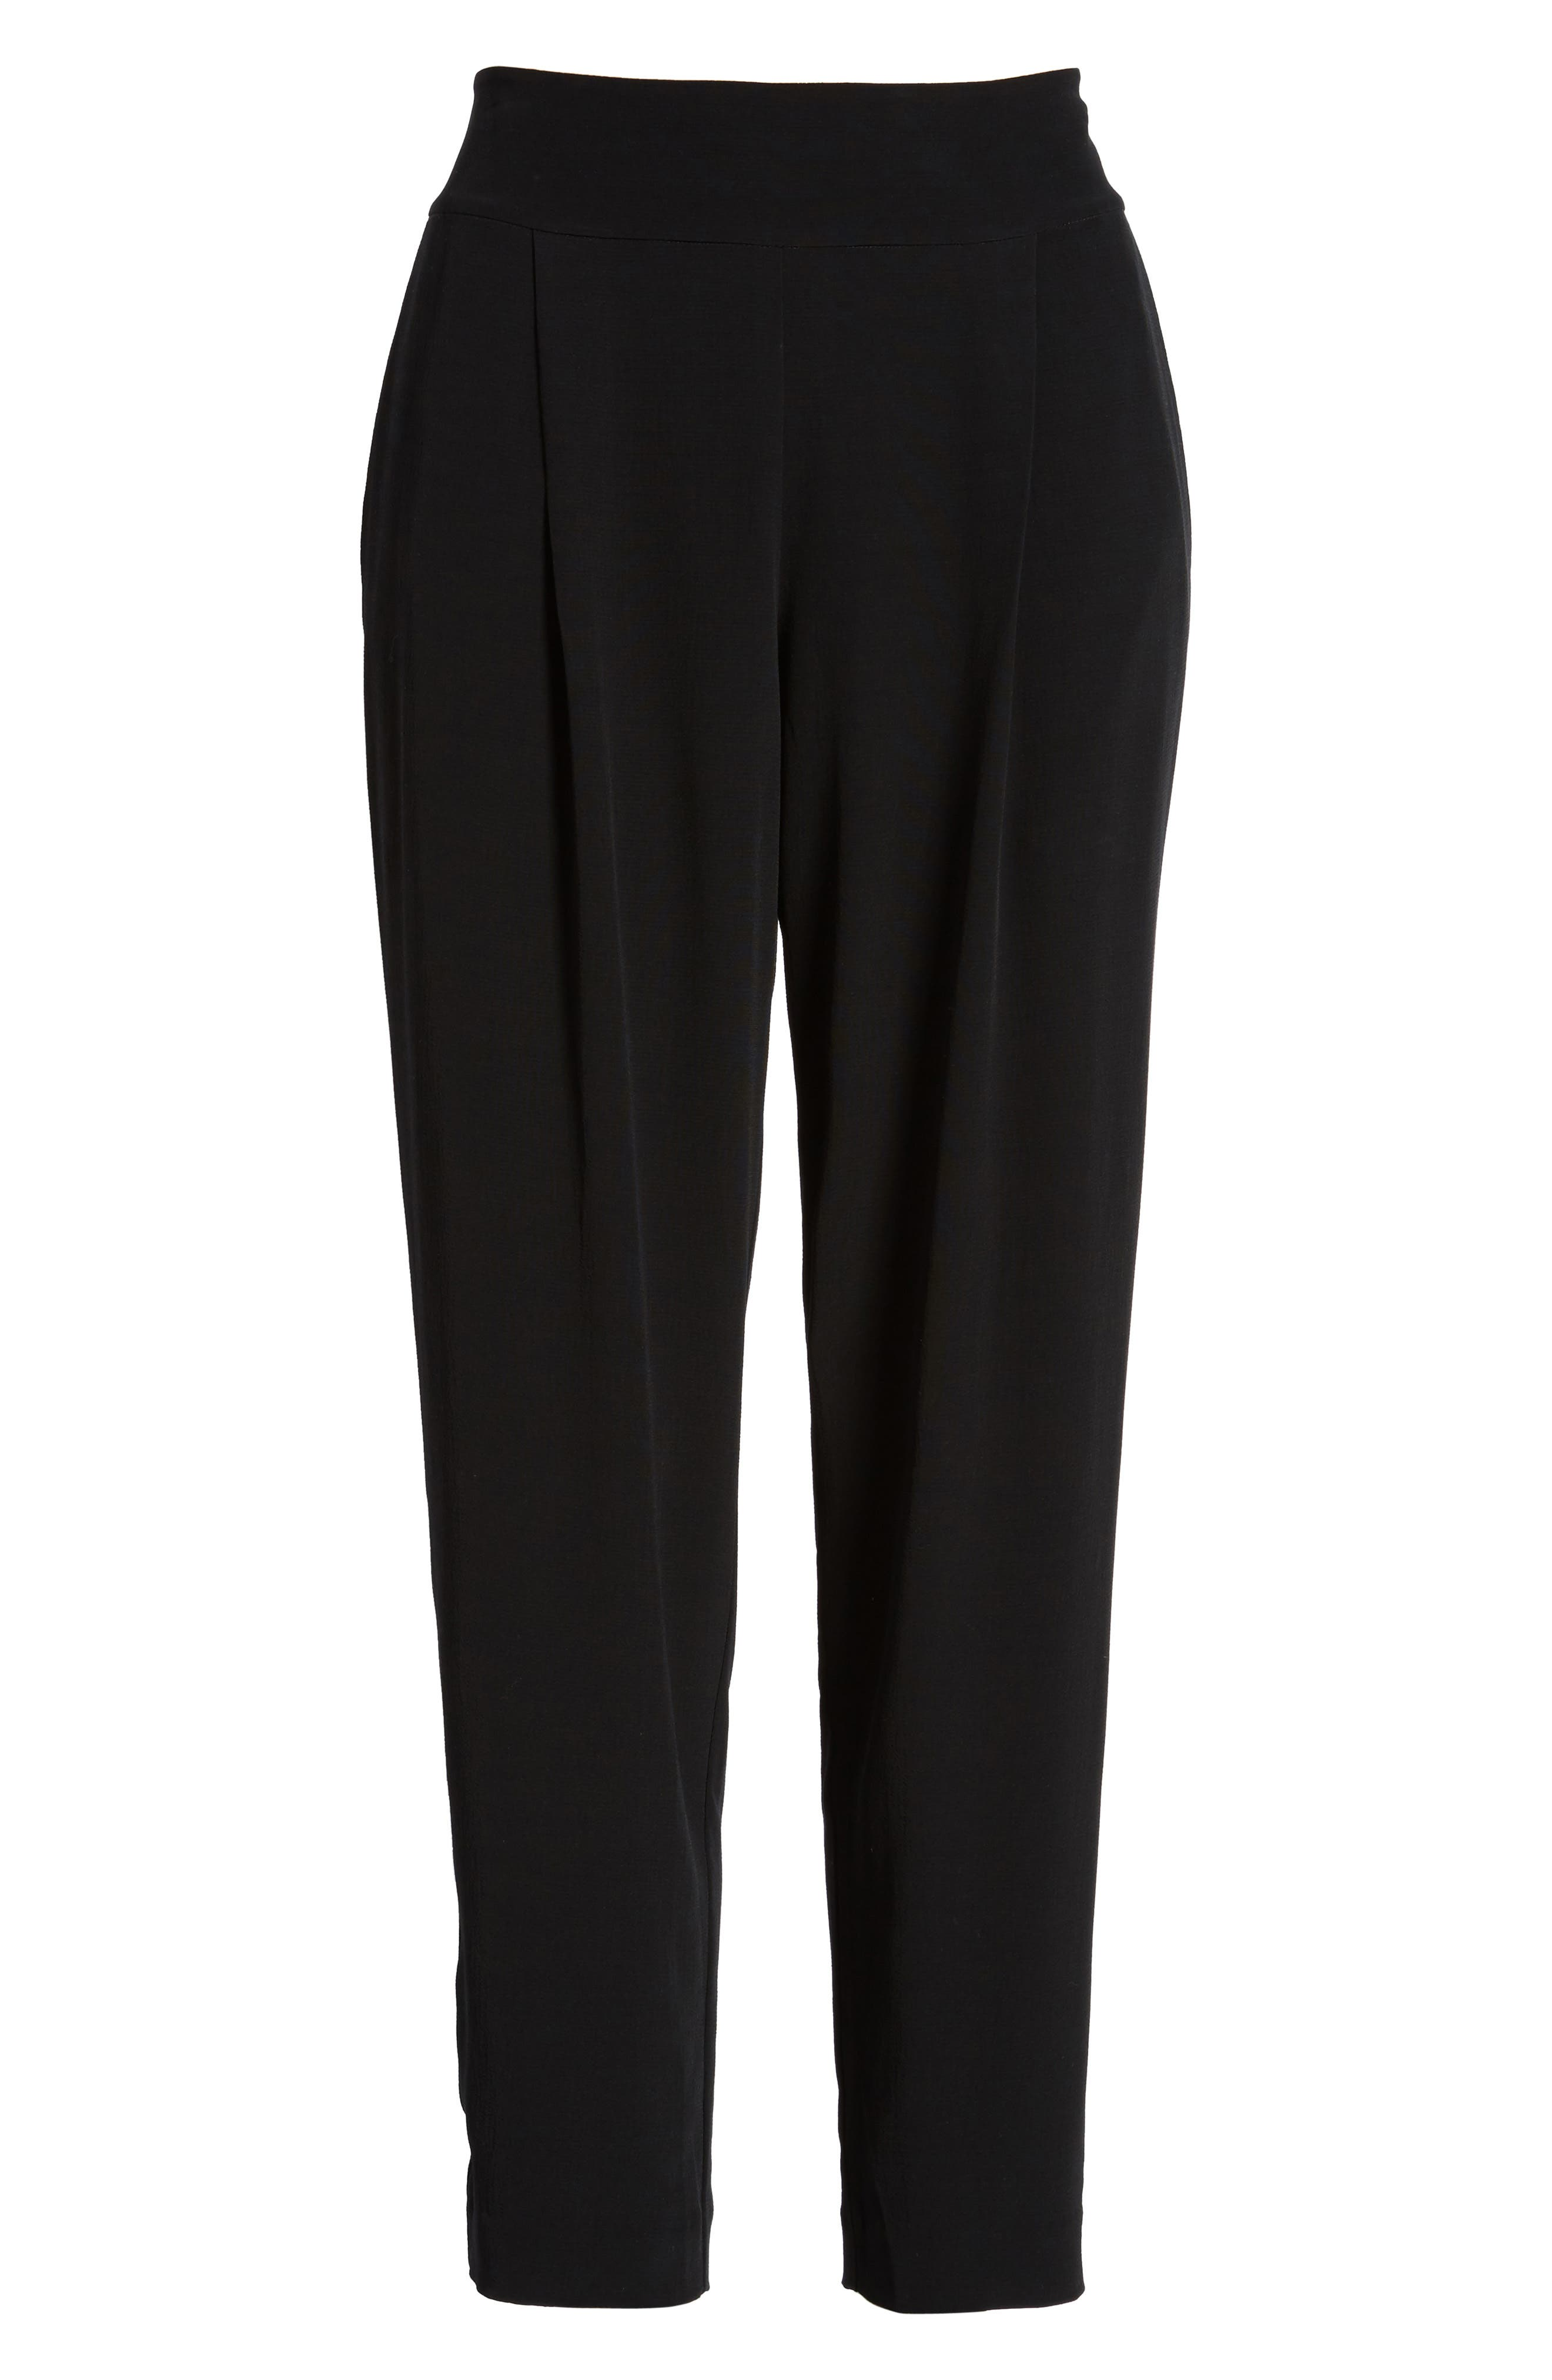 Slouchy Tencel<sup>®</sup> Lyocell Blend Crop Pants,                             Alternate thumbnail 7, color,                             Black